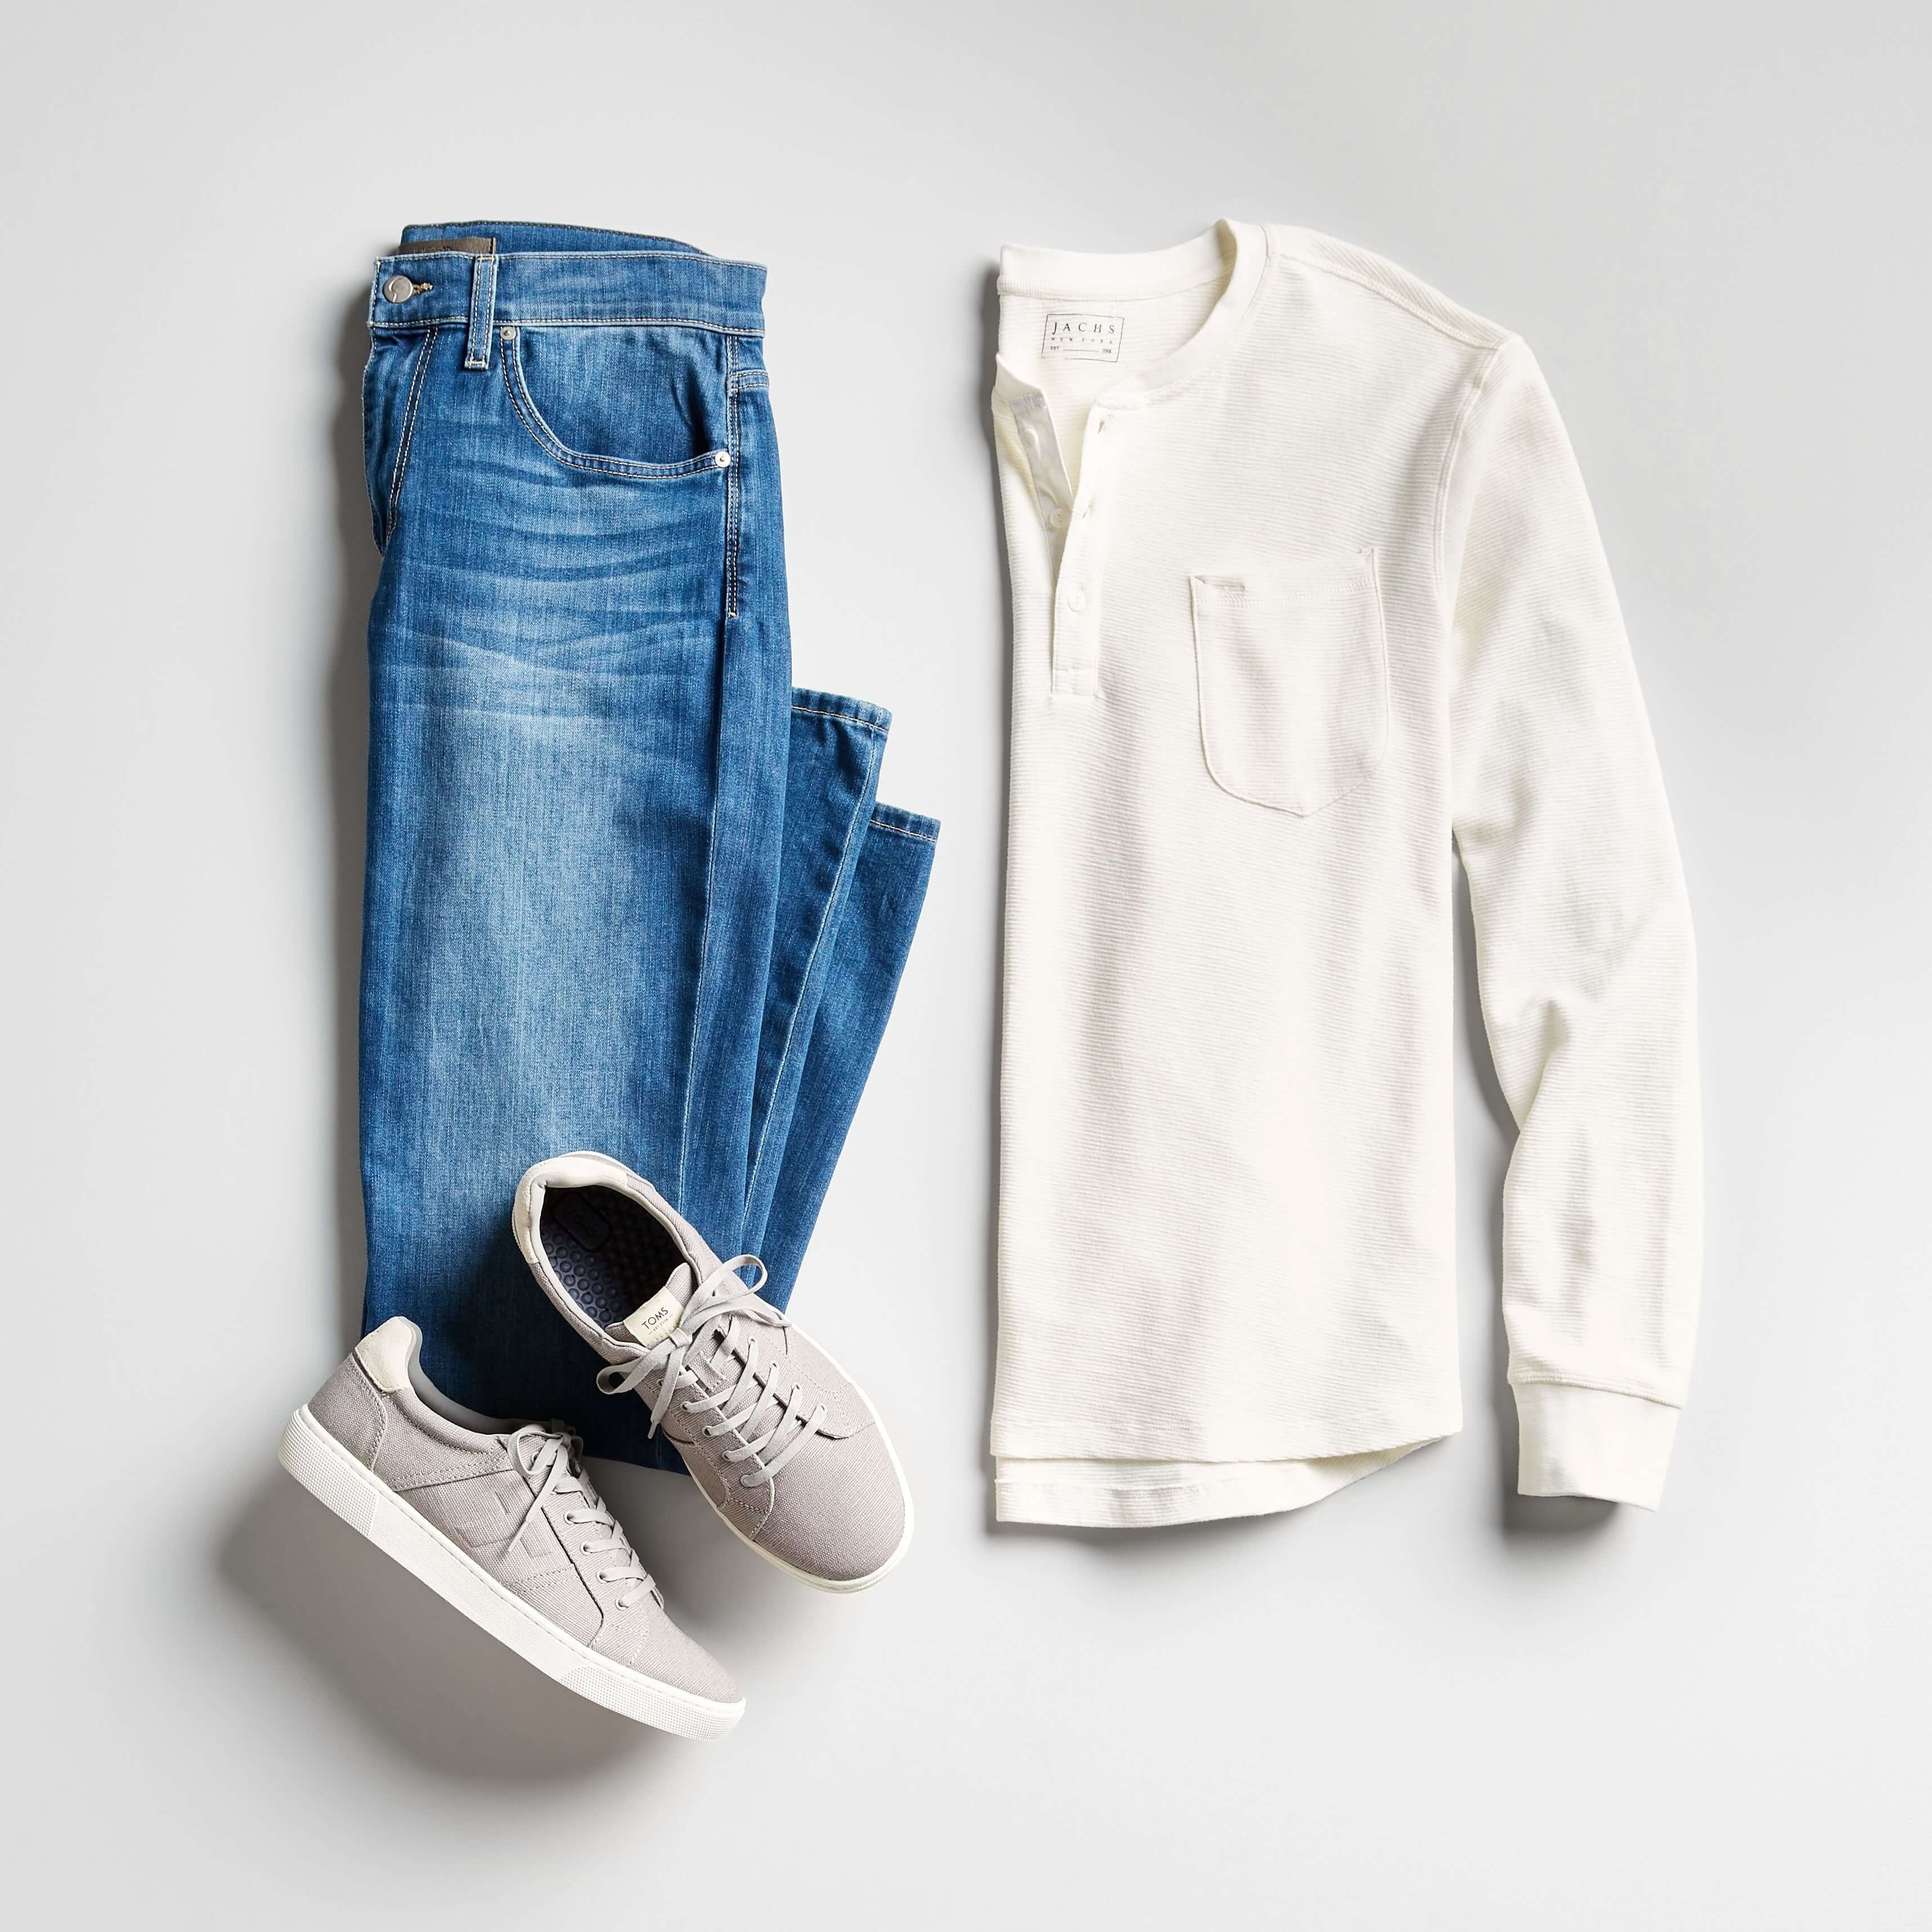 men's white henley and jeans